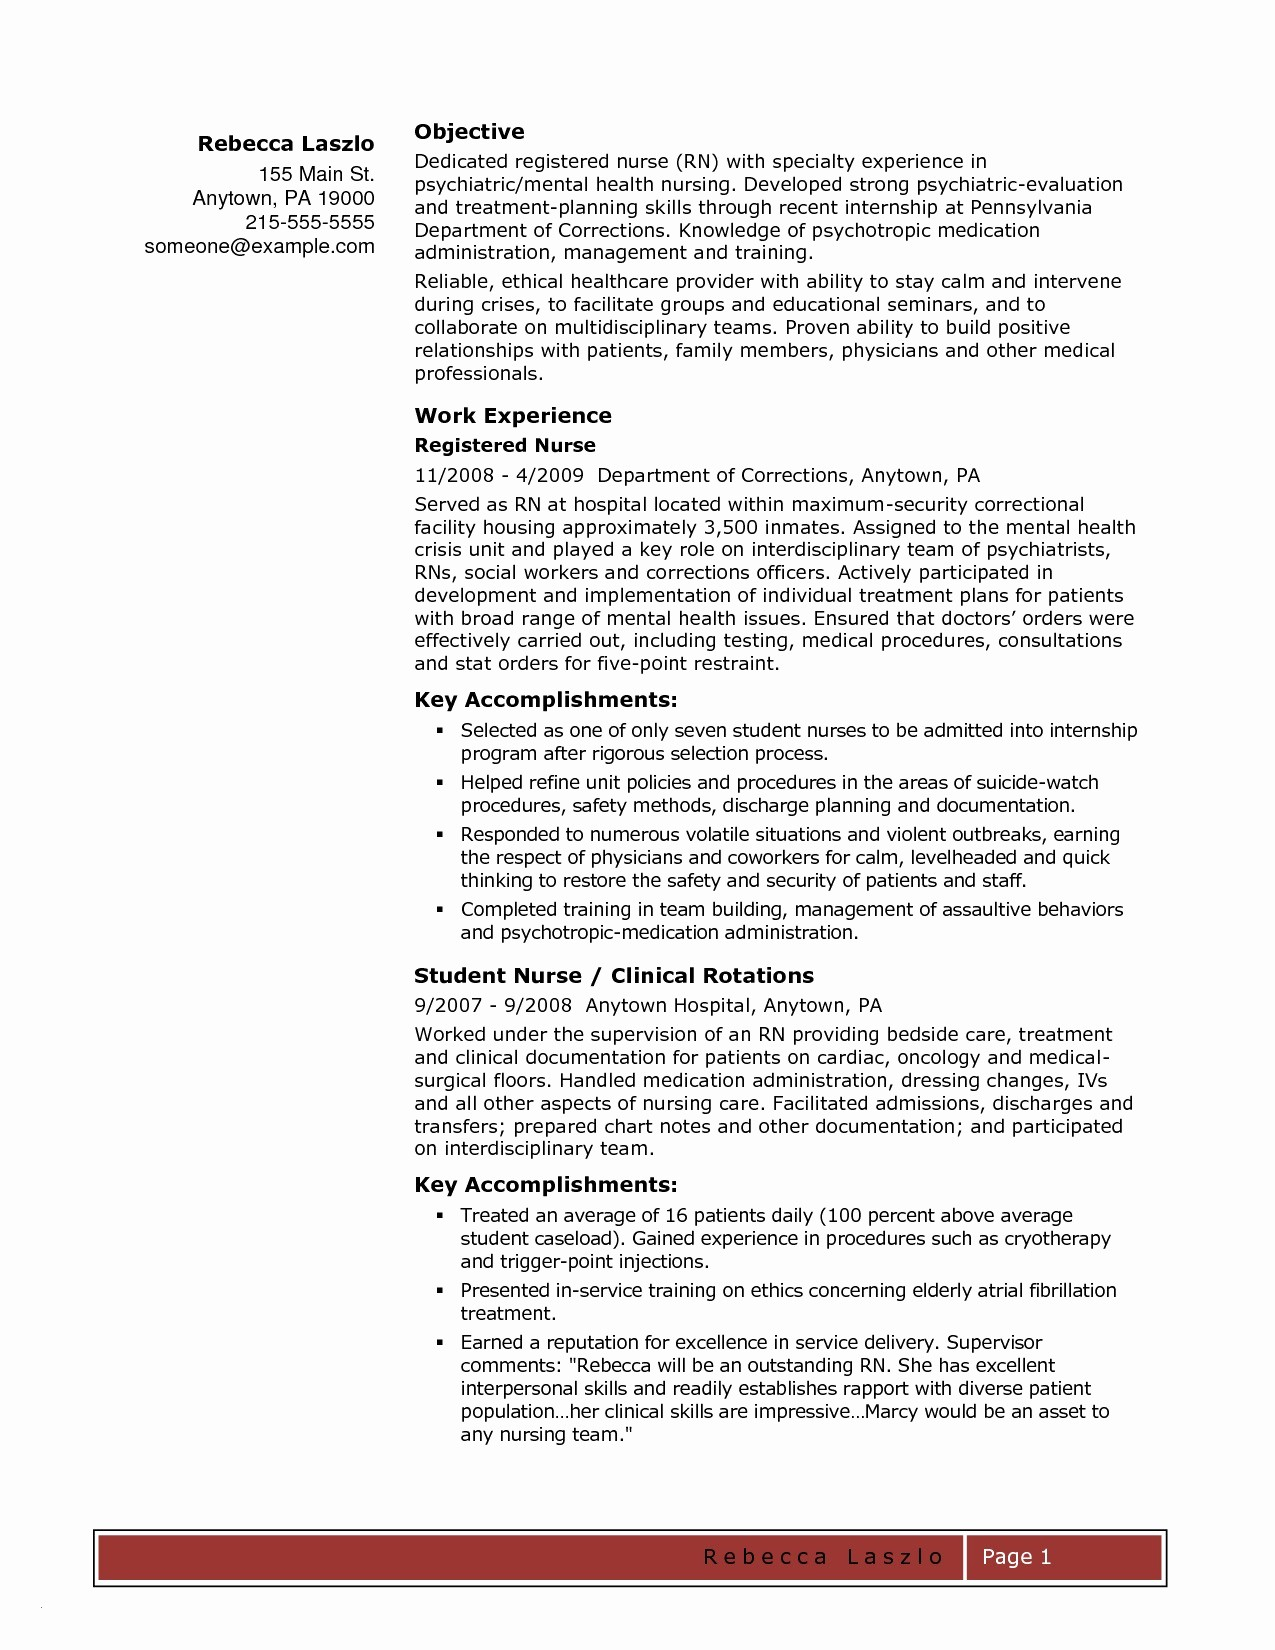 Charge Nurse Resume - Dialysis Technician Resume Valid Dialysis Technician Resume Charge